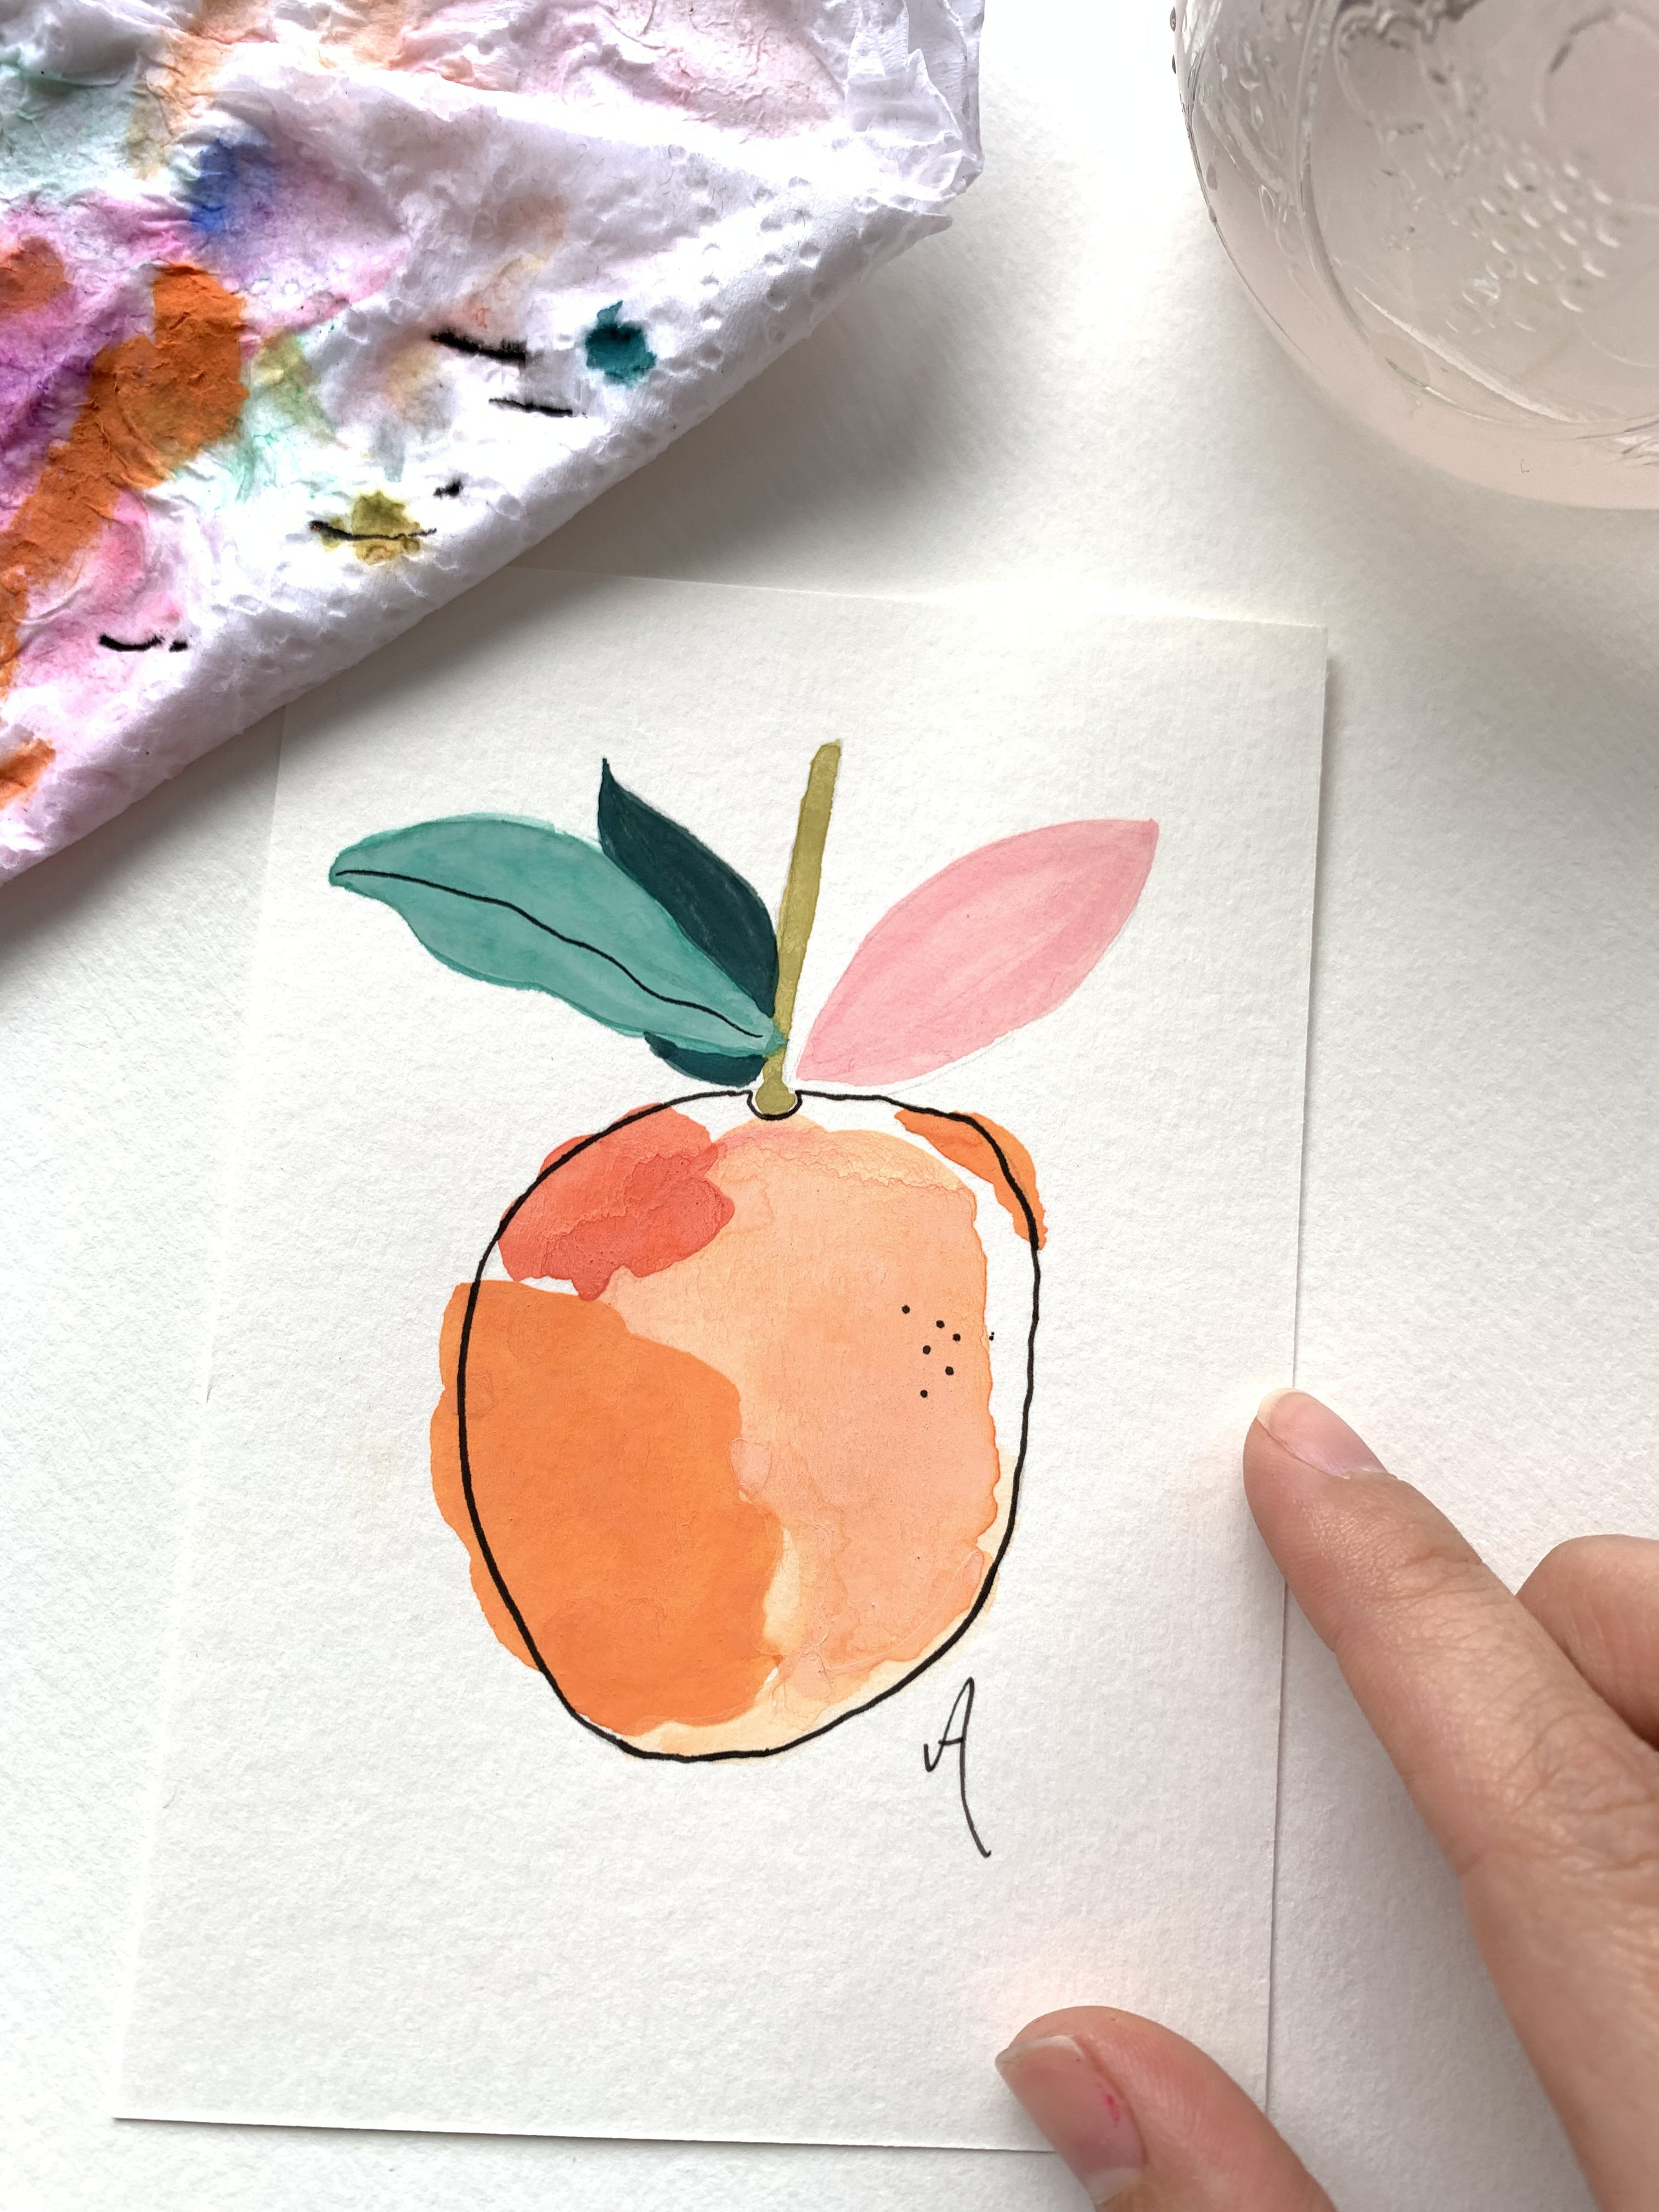 Pin By Lynden Hight On Watercolor Painting Art Projects Art Drawings Watercolor Art